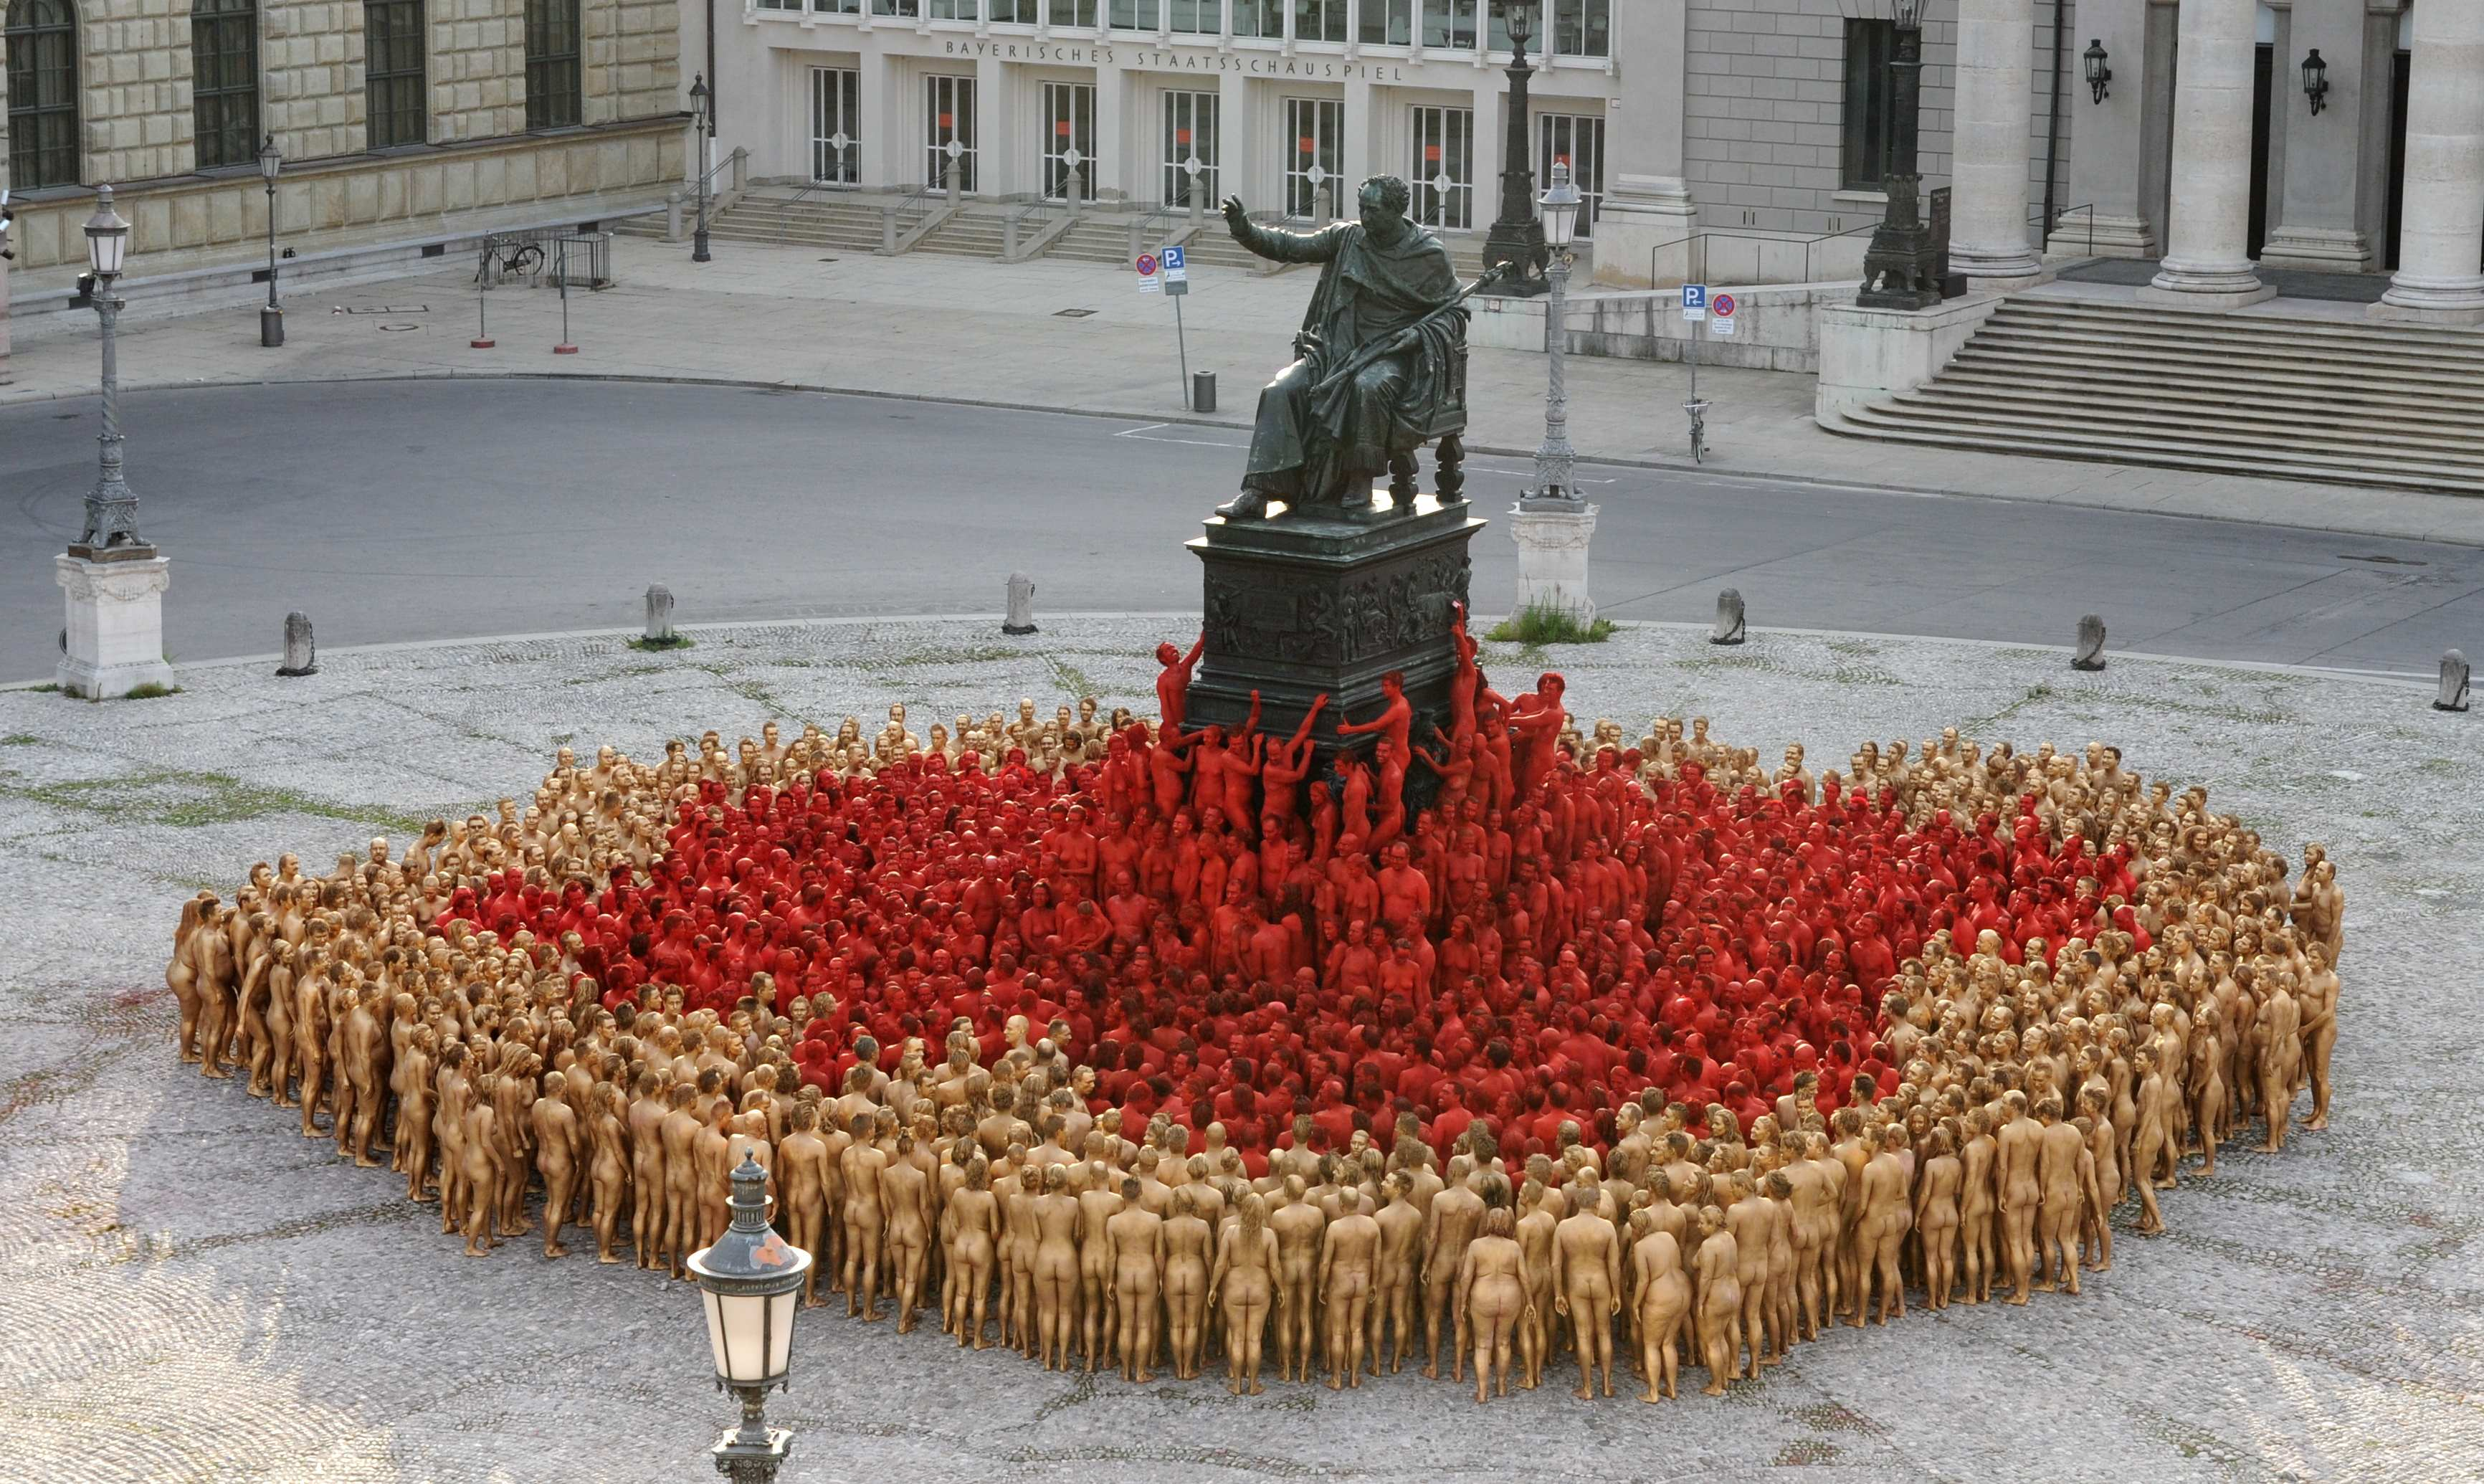 Spencer Tunick is coming to Melbourne to snap hundreds of